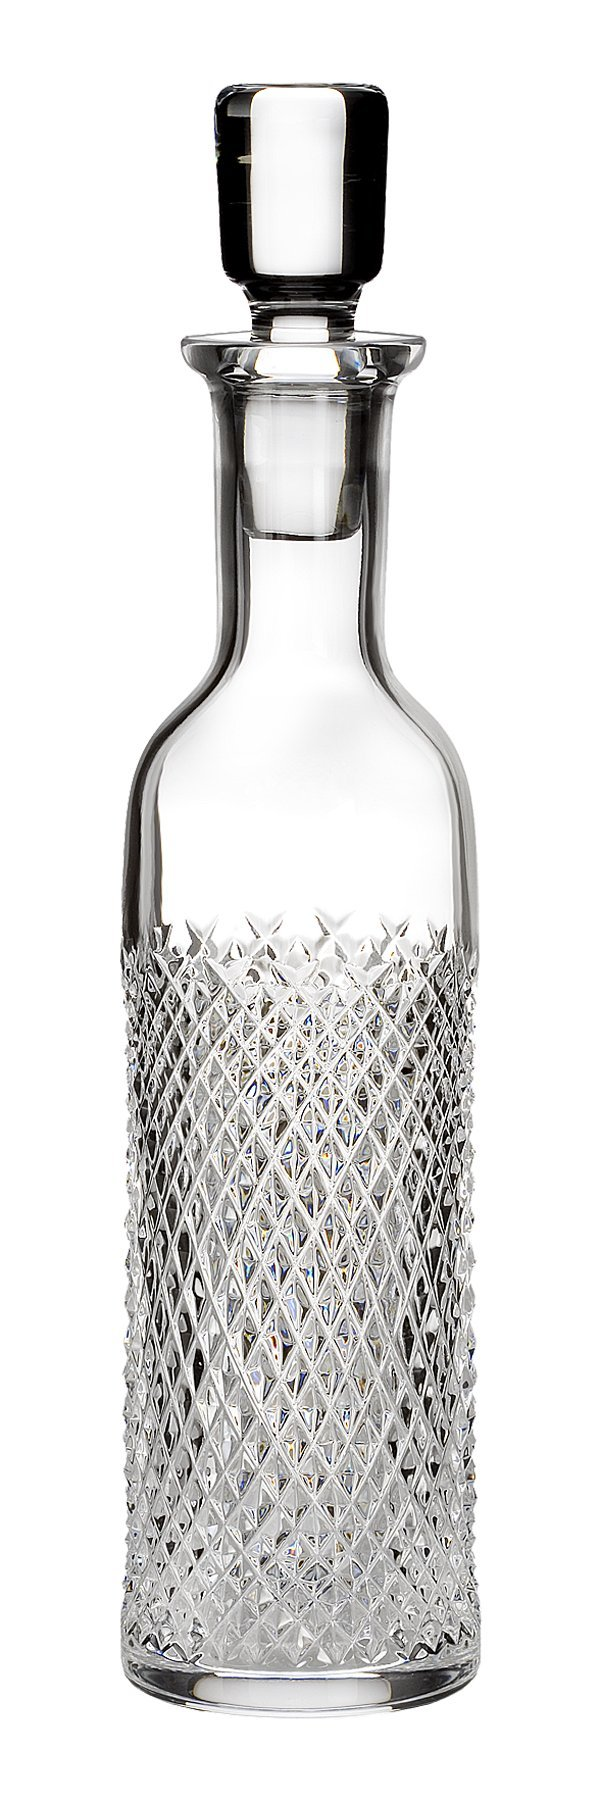 Waterford Alana Essence Collection Decanter, 12-Inch